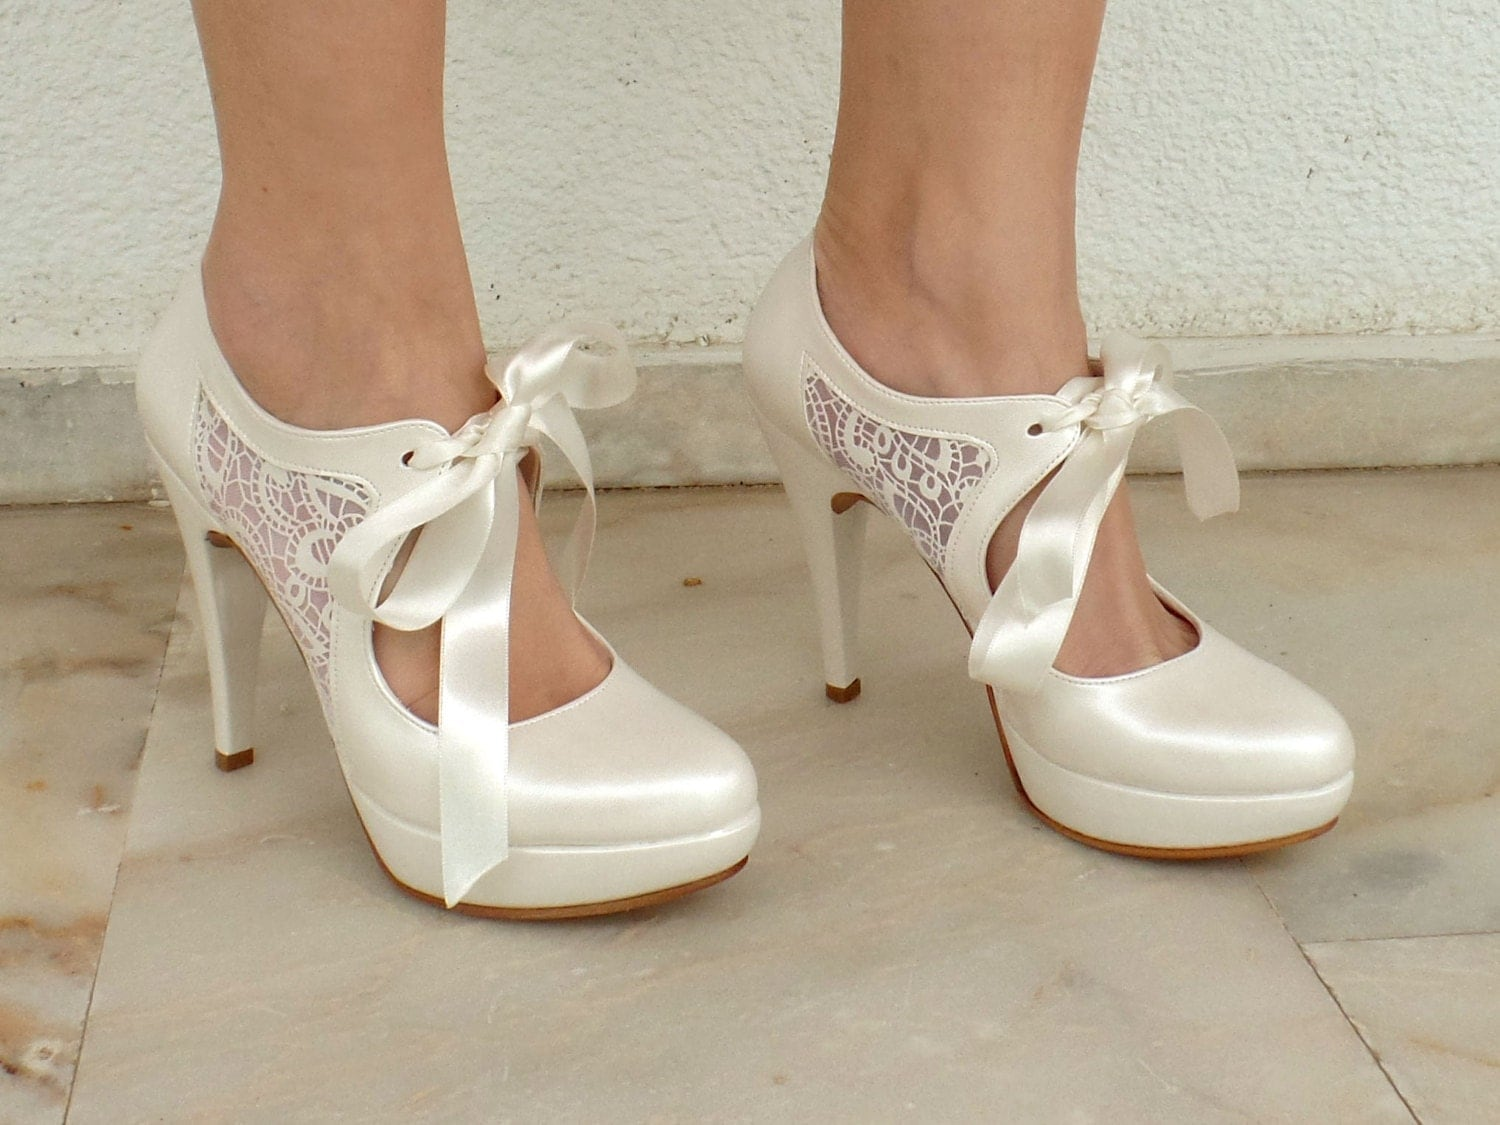 Wedding High Heels Ivory: Wedding Shoes Bridal Shoes With Ivory Lace And Satin